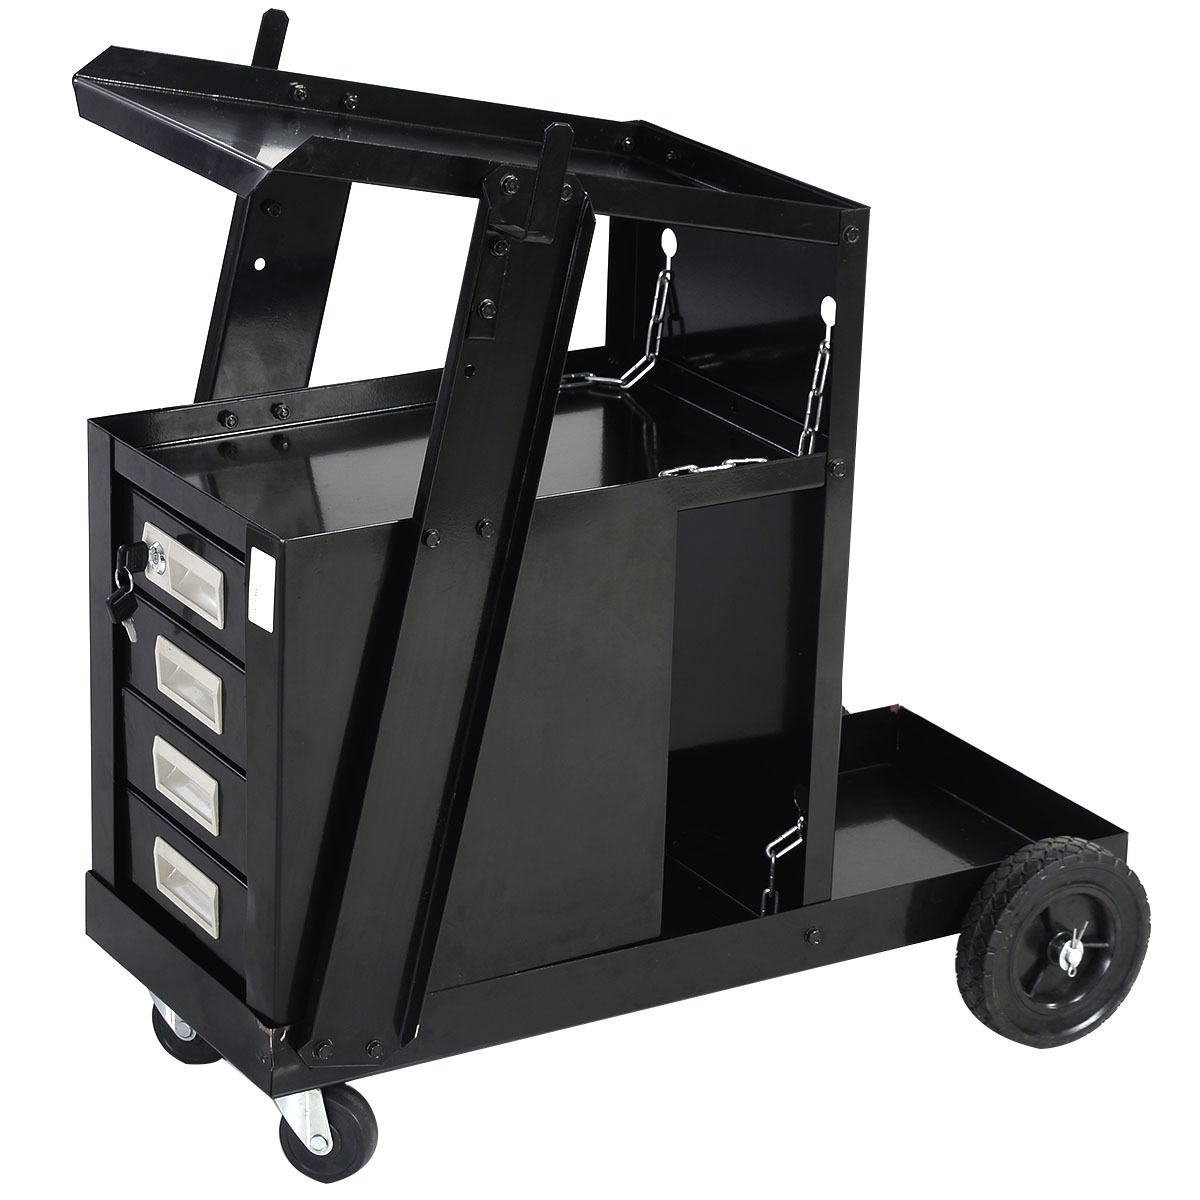 New Black 4 Drawer Cabinet Welding Welder Cart Plasma Cutter Tank Storage MIG TIG ARC